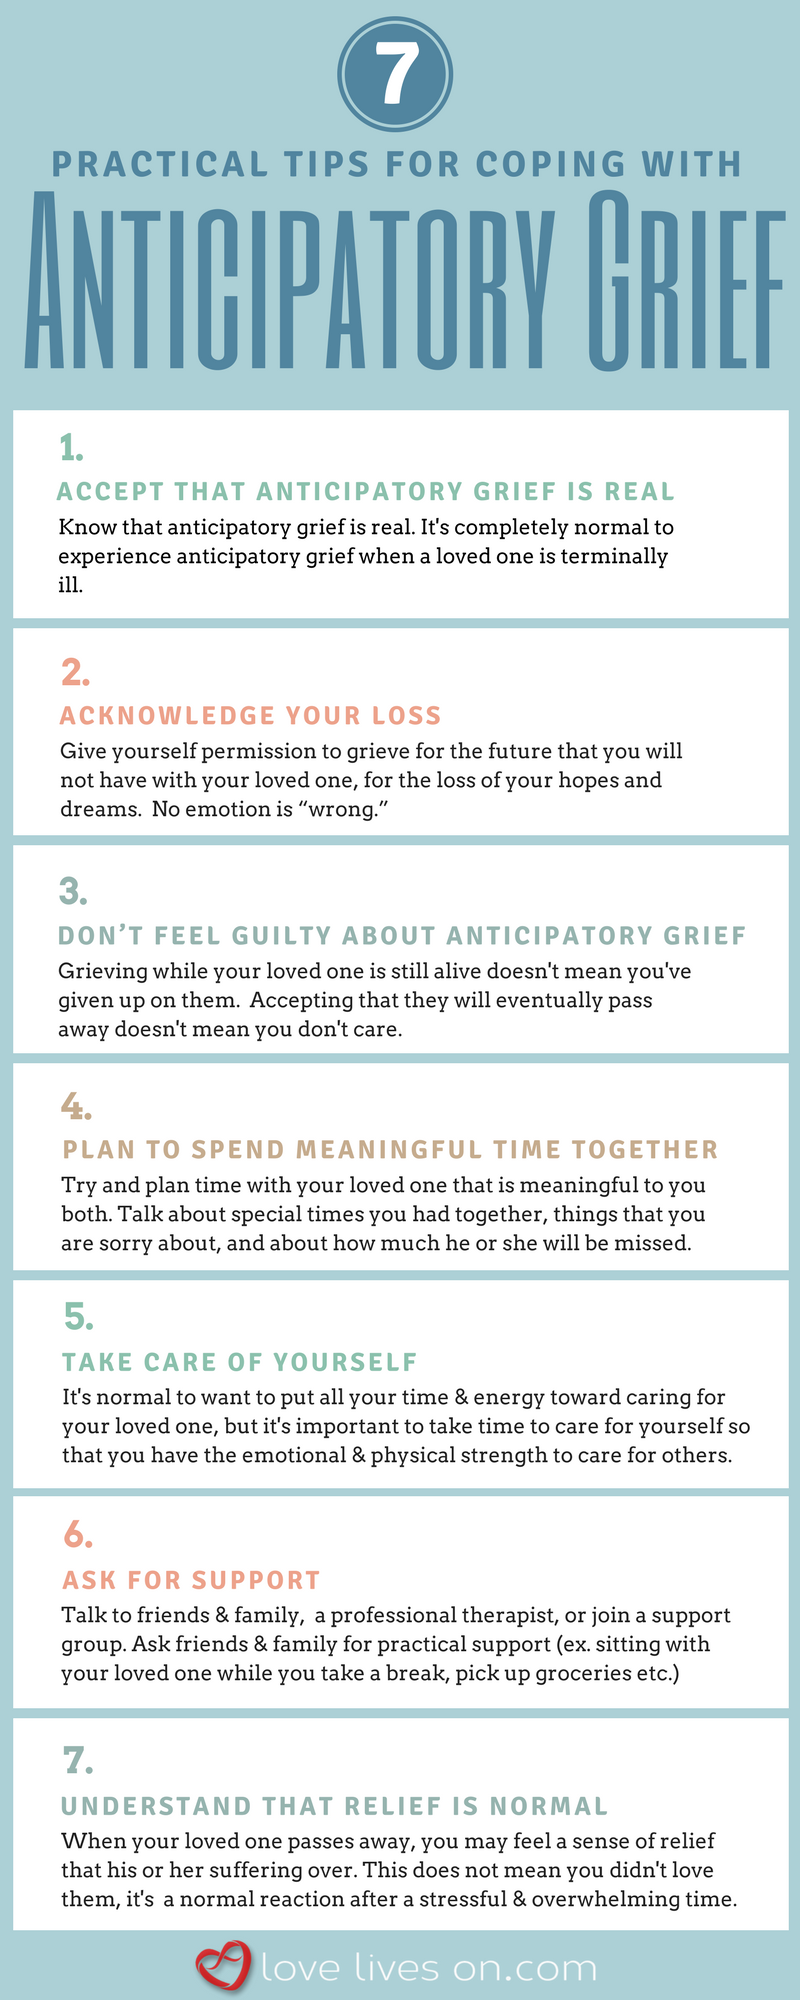 Watch How To Cope With Anticipatory Grief Anticipatory Grief Grief Healing Grief Counseling